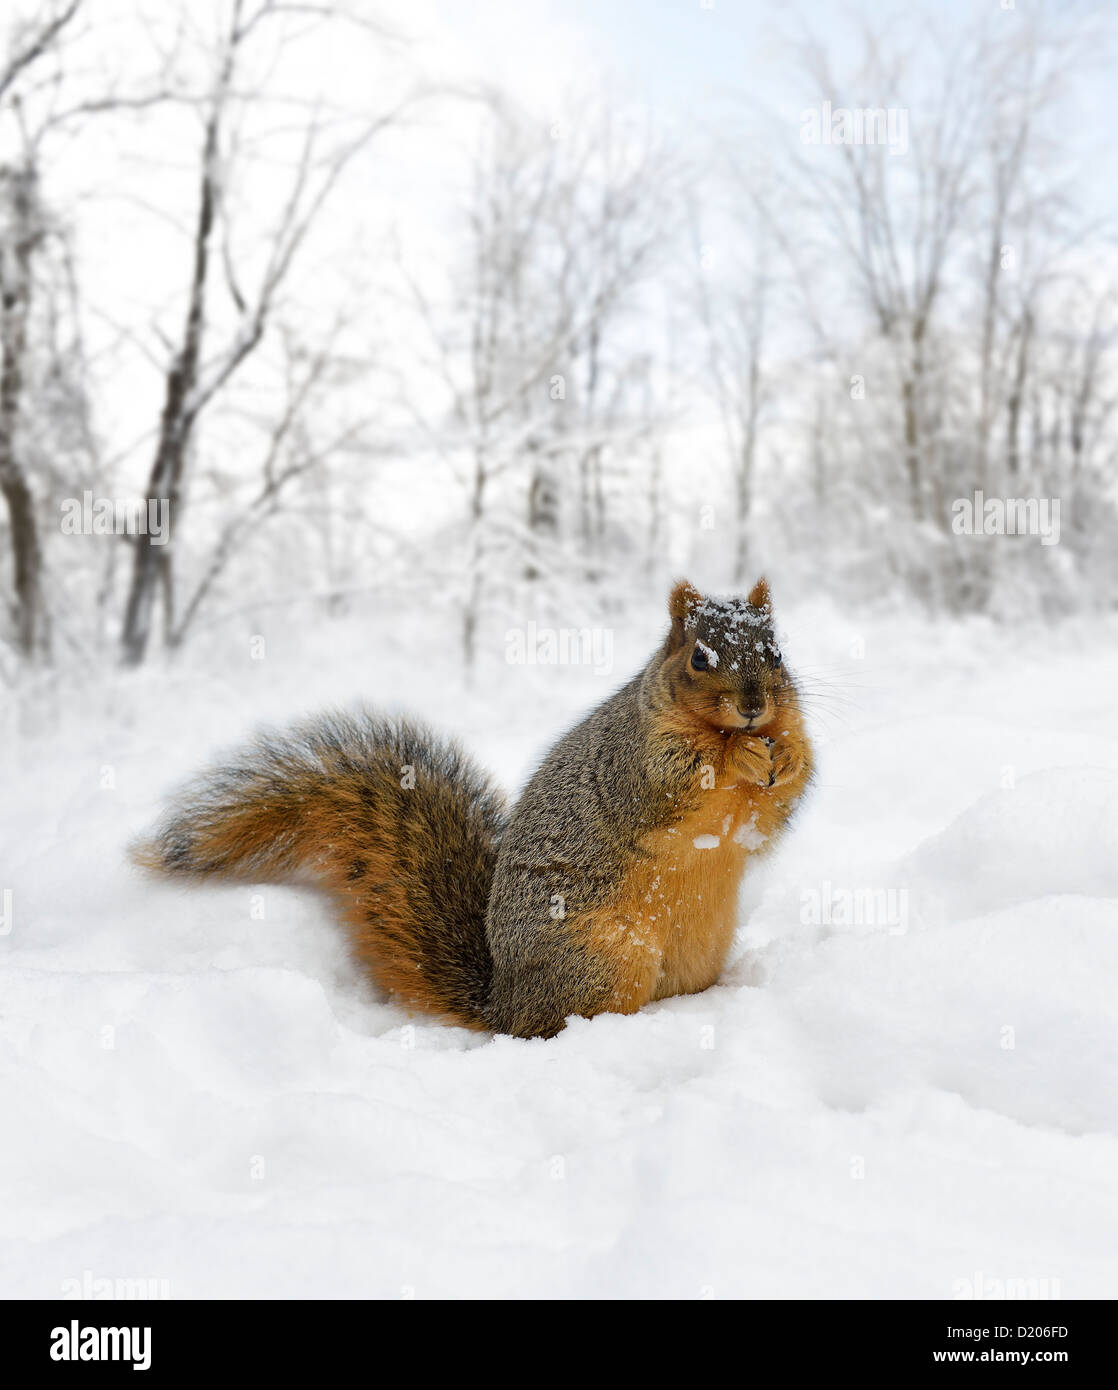 Fox Squirrel On The Snow - Stock Image